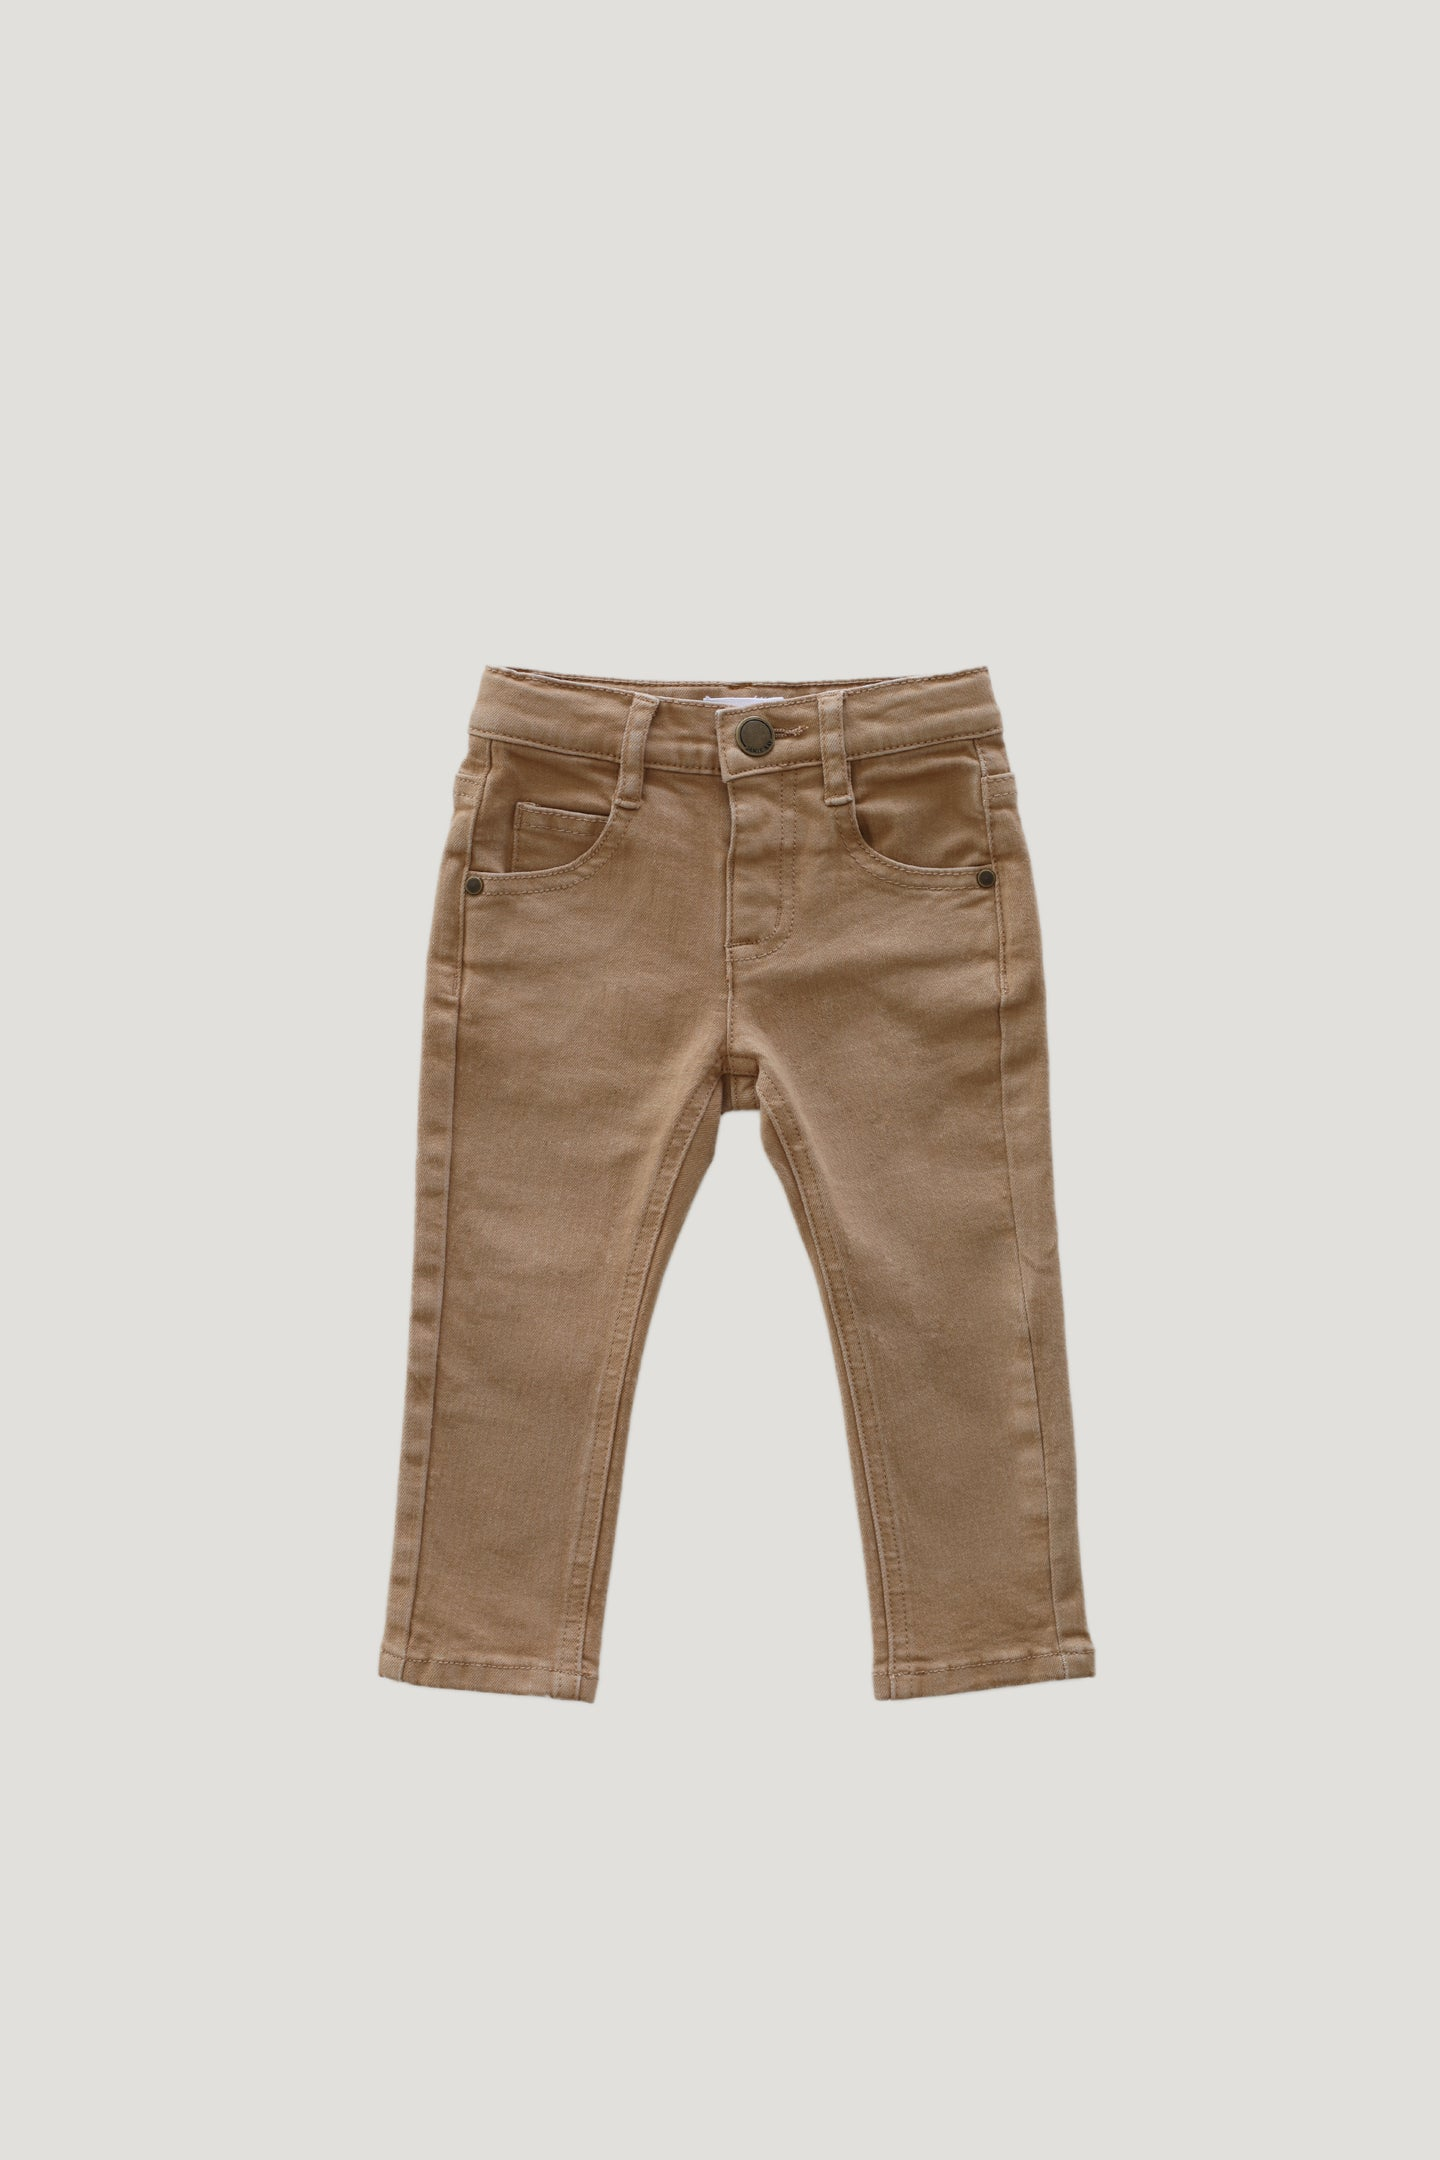 Jamie Kay Slim Fit Jean - Wheat